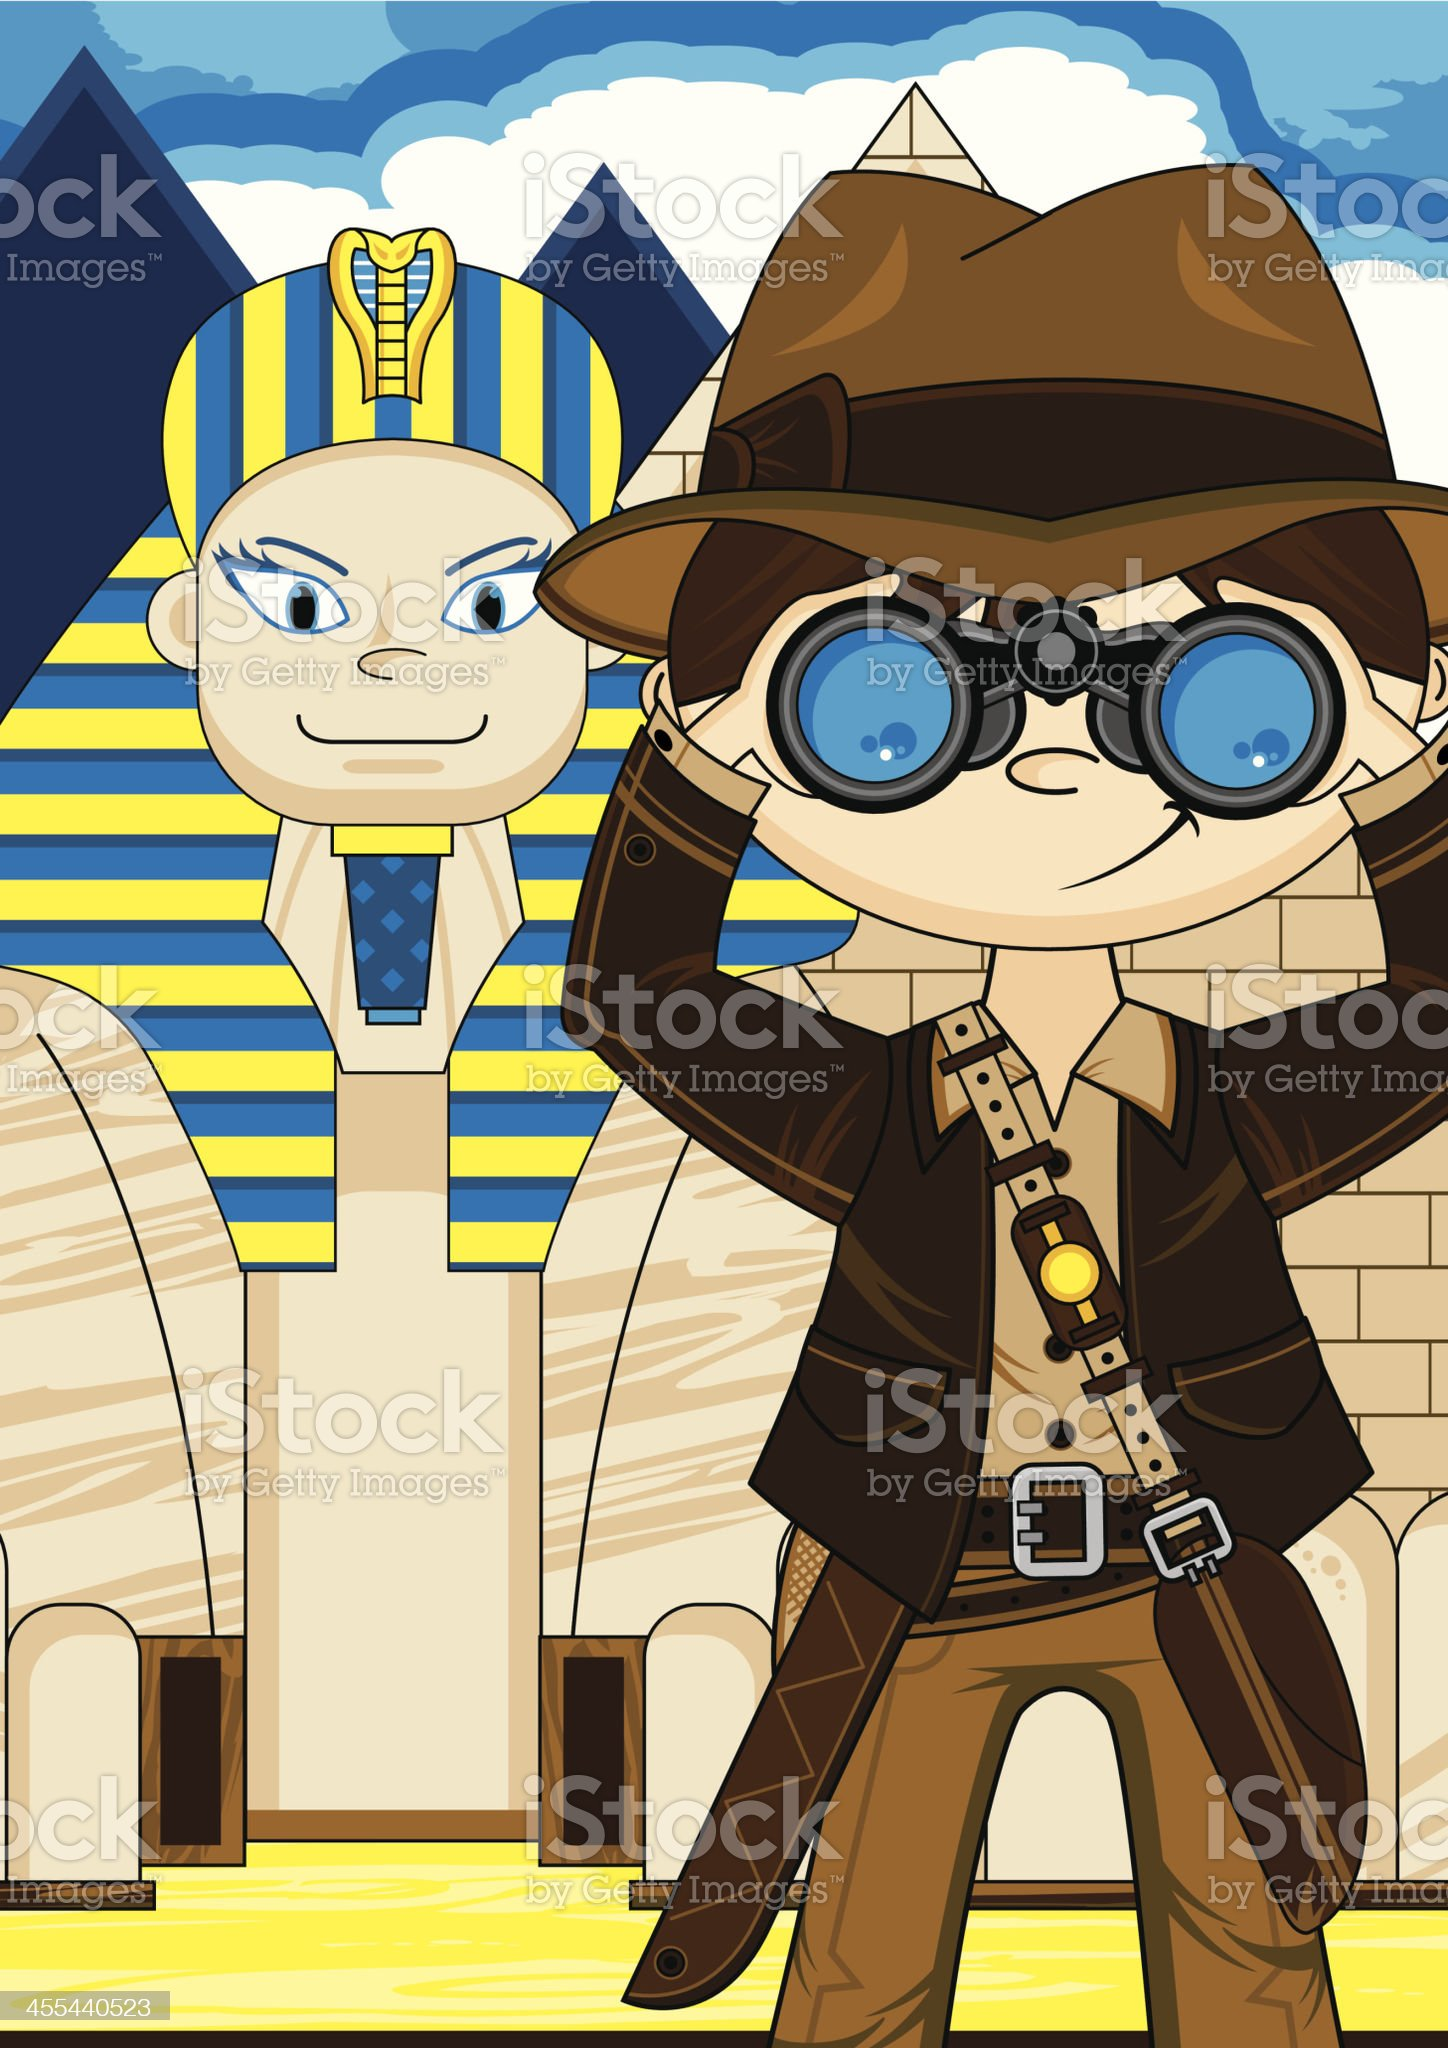 Cartoon Explorer and Egyptian Sphinx Scene royalty-free stock vector art